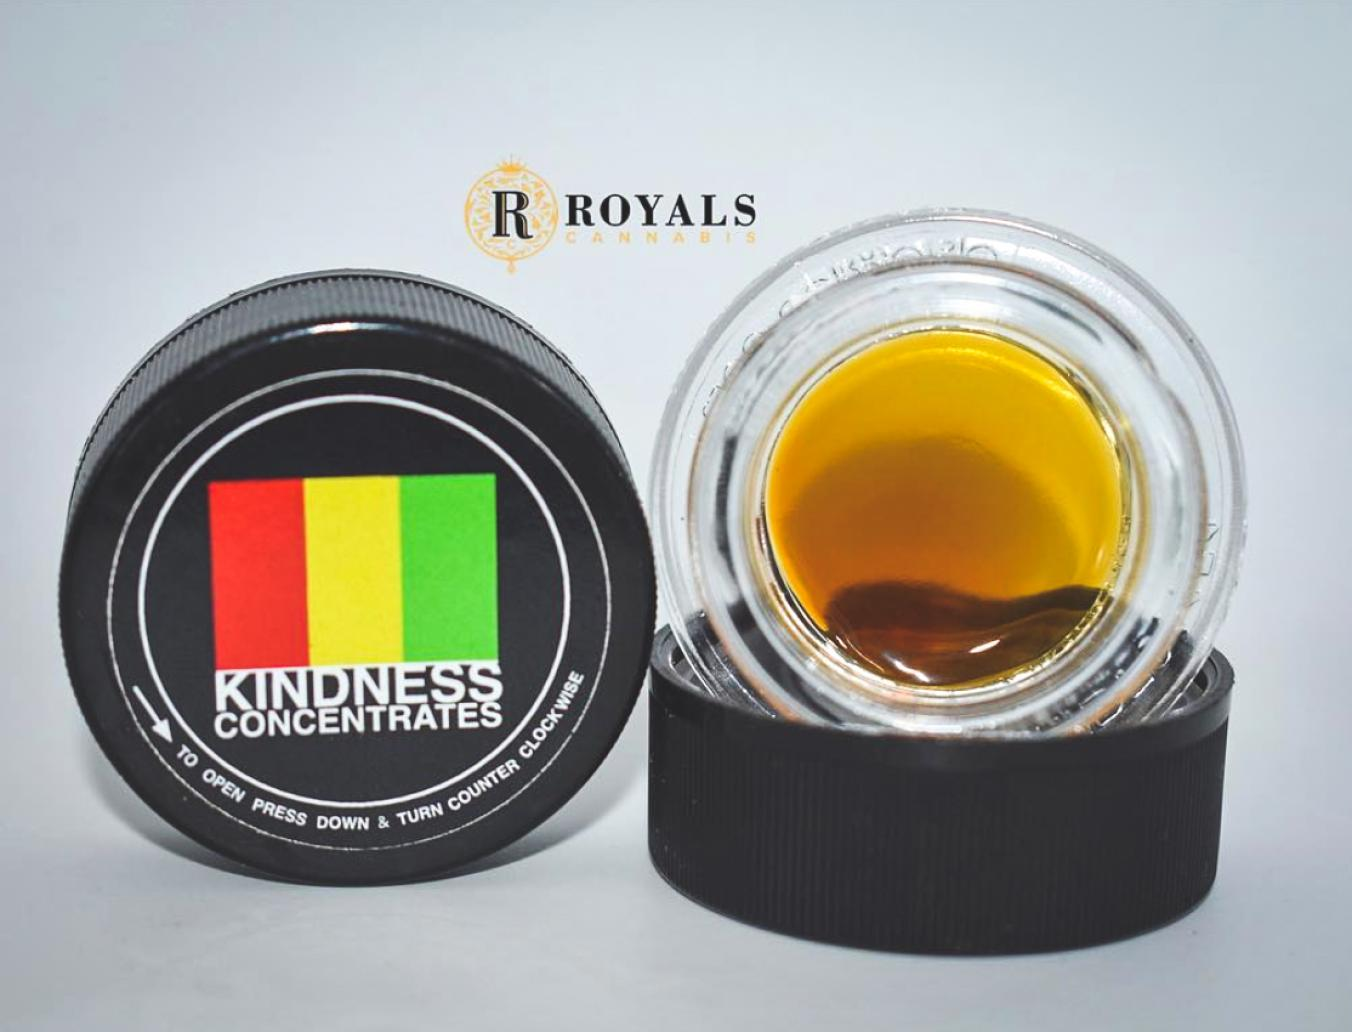 P.O.G.G. Kindness Concentrates